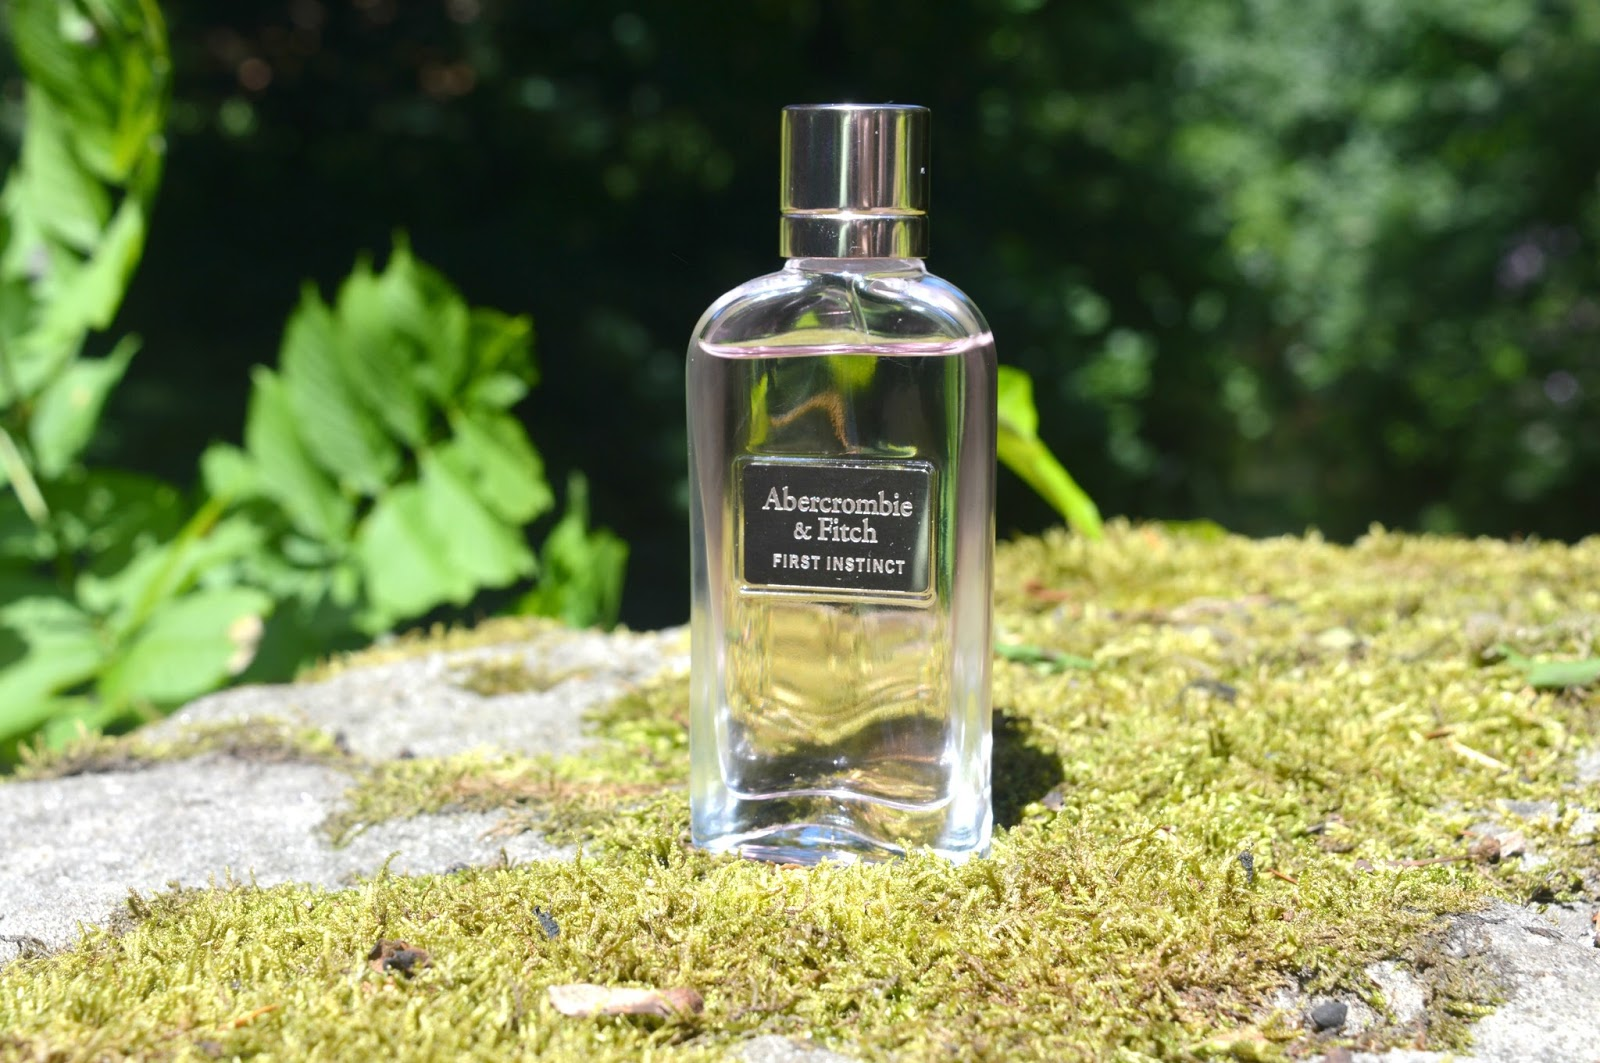 Summer Fragrances at House of Fraser, Intu Metrocentre - Abercrombie and Fitch First Instinct